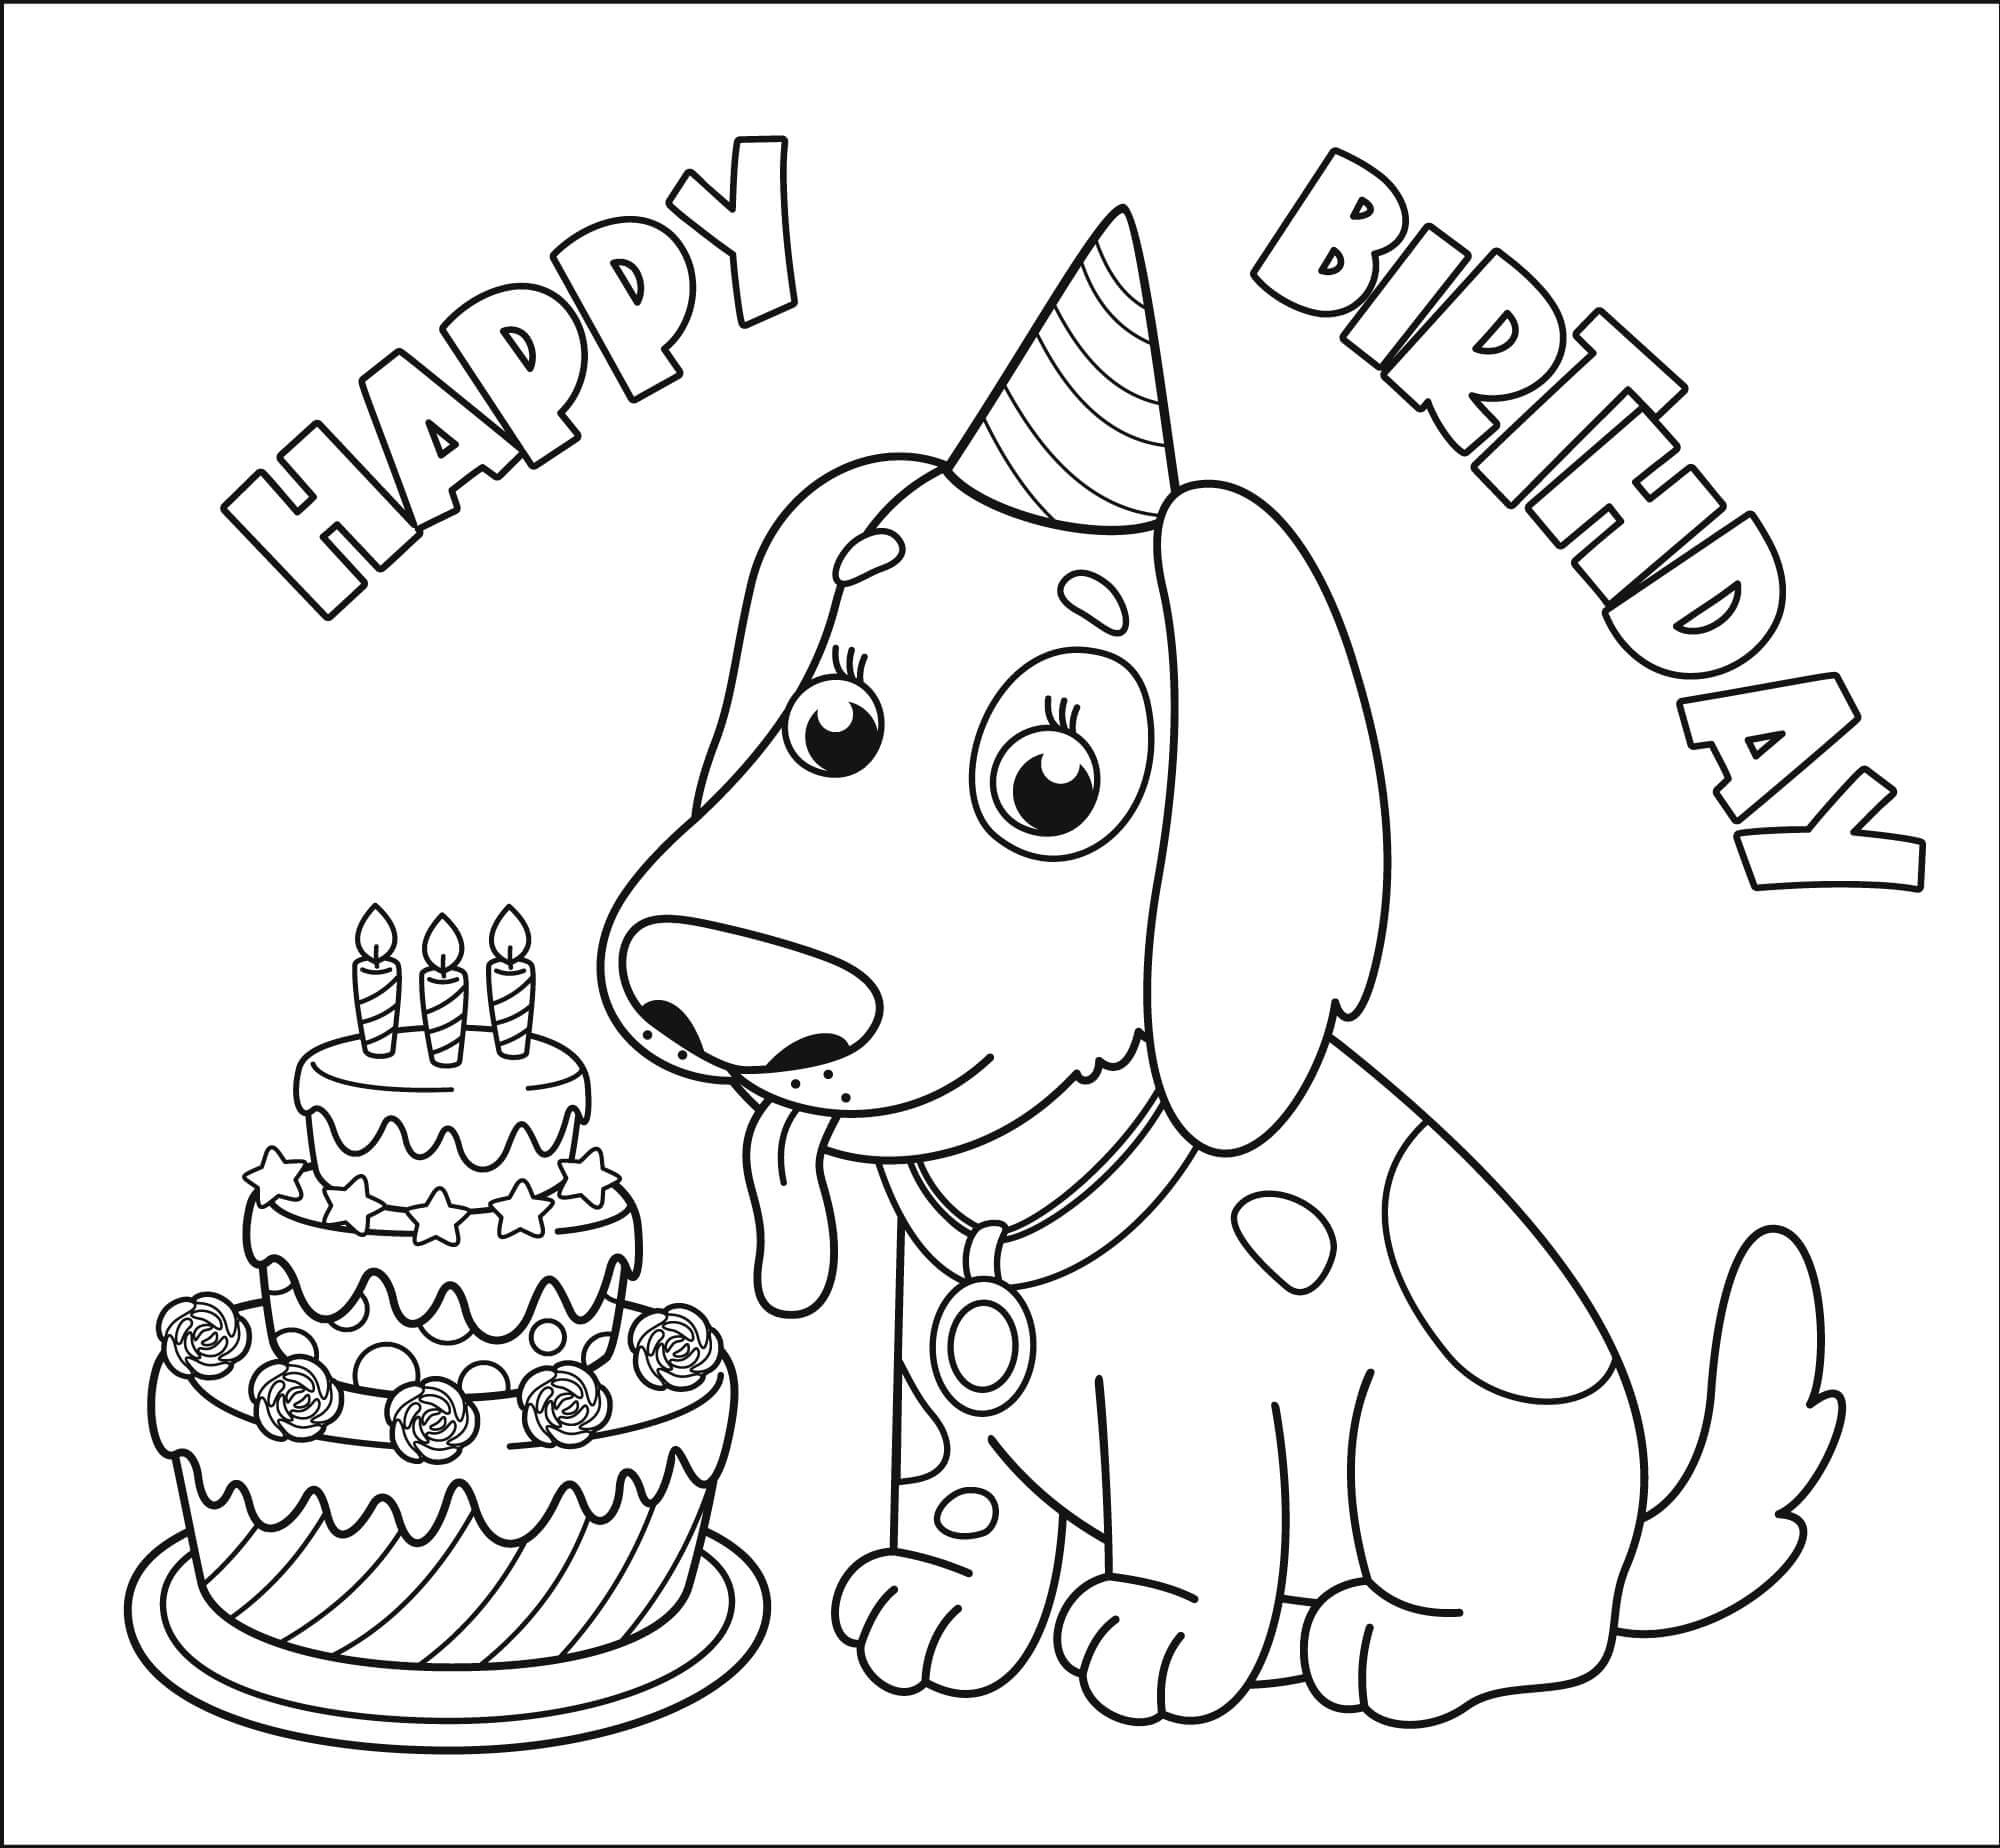 Happy birthday with dog Coloring Page